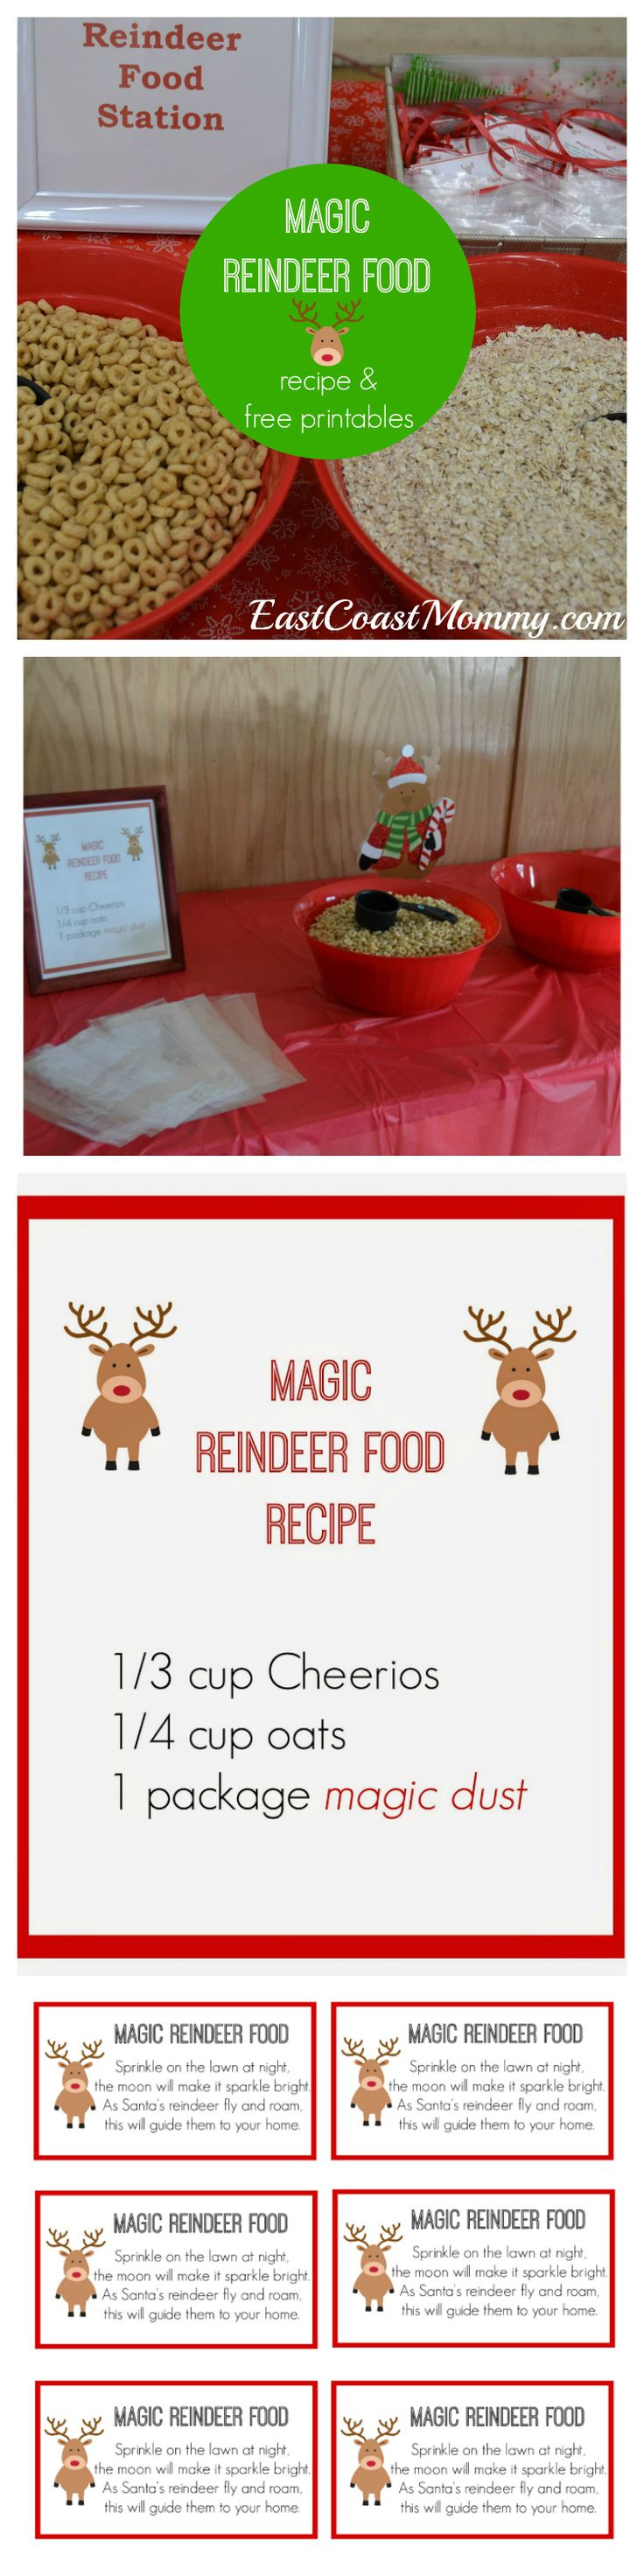 Making magic reindeer food is a fantastic Christmas activity, and the free printables on this website are adorable!